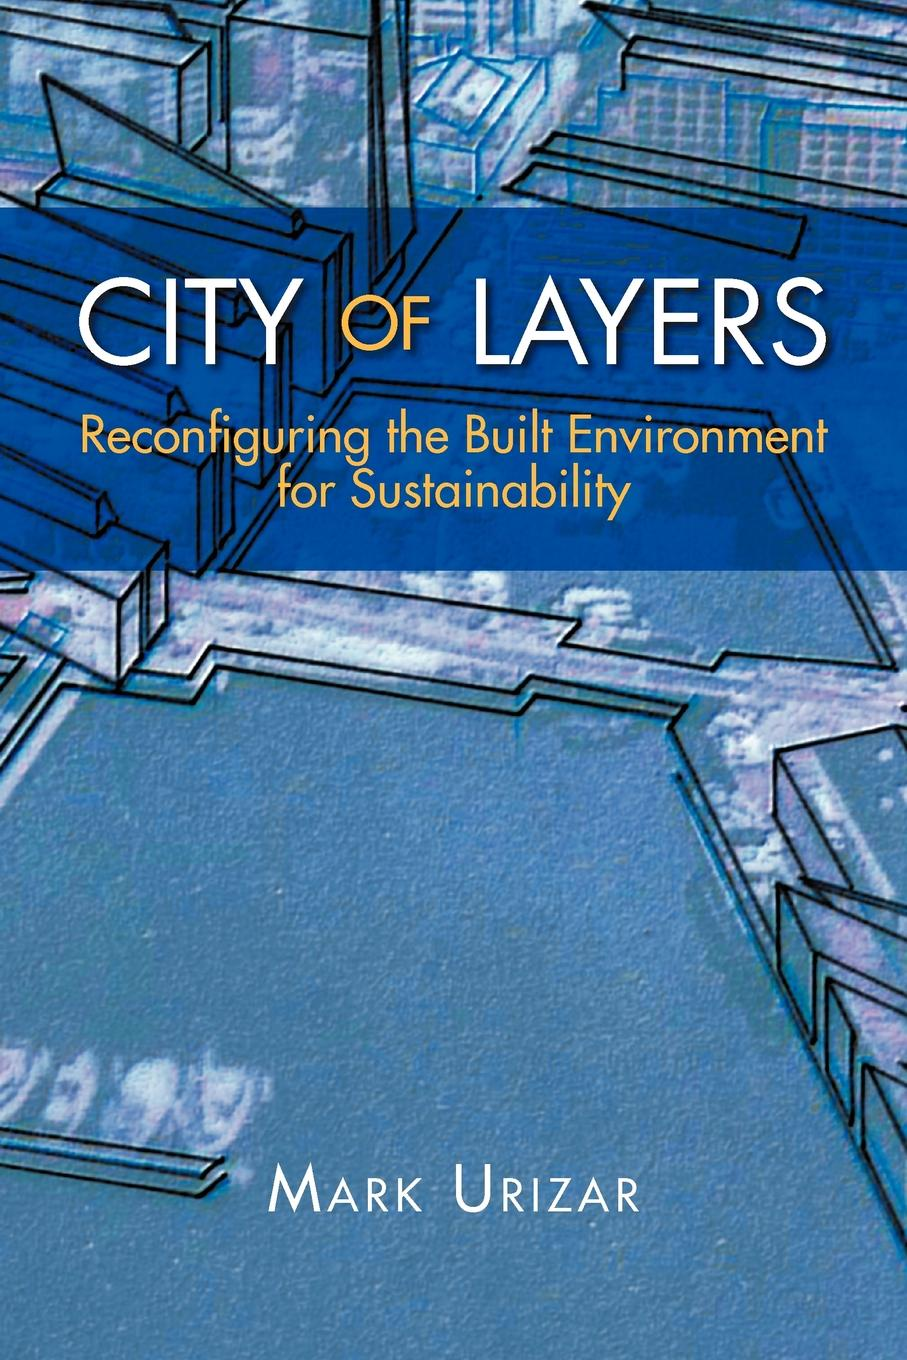 Mark Urizar CITY OF LAYERS. Reconfiguring the Built Environment for Sustainability